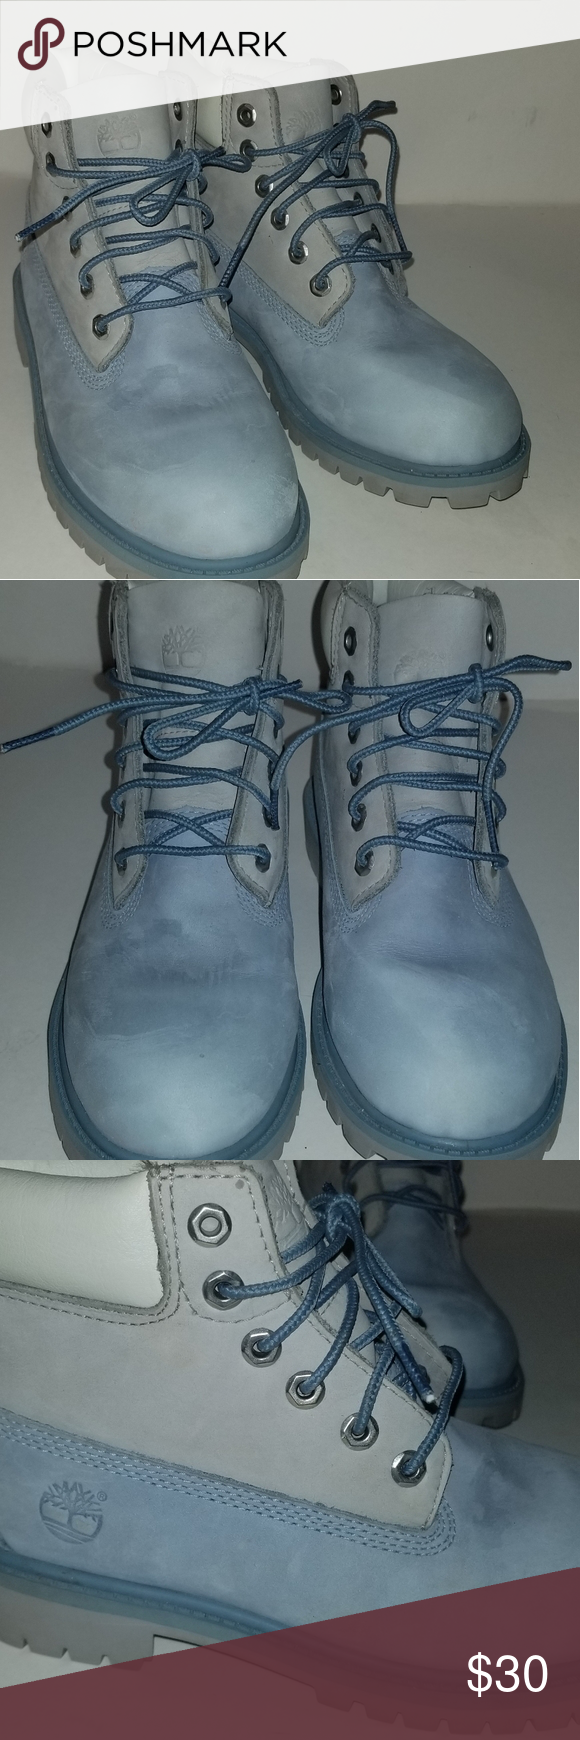 BLUE/WHITE YOUTH TIMBERLAND BOOTS